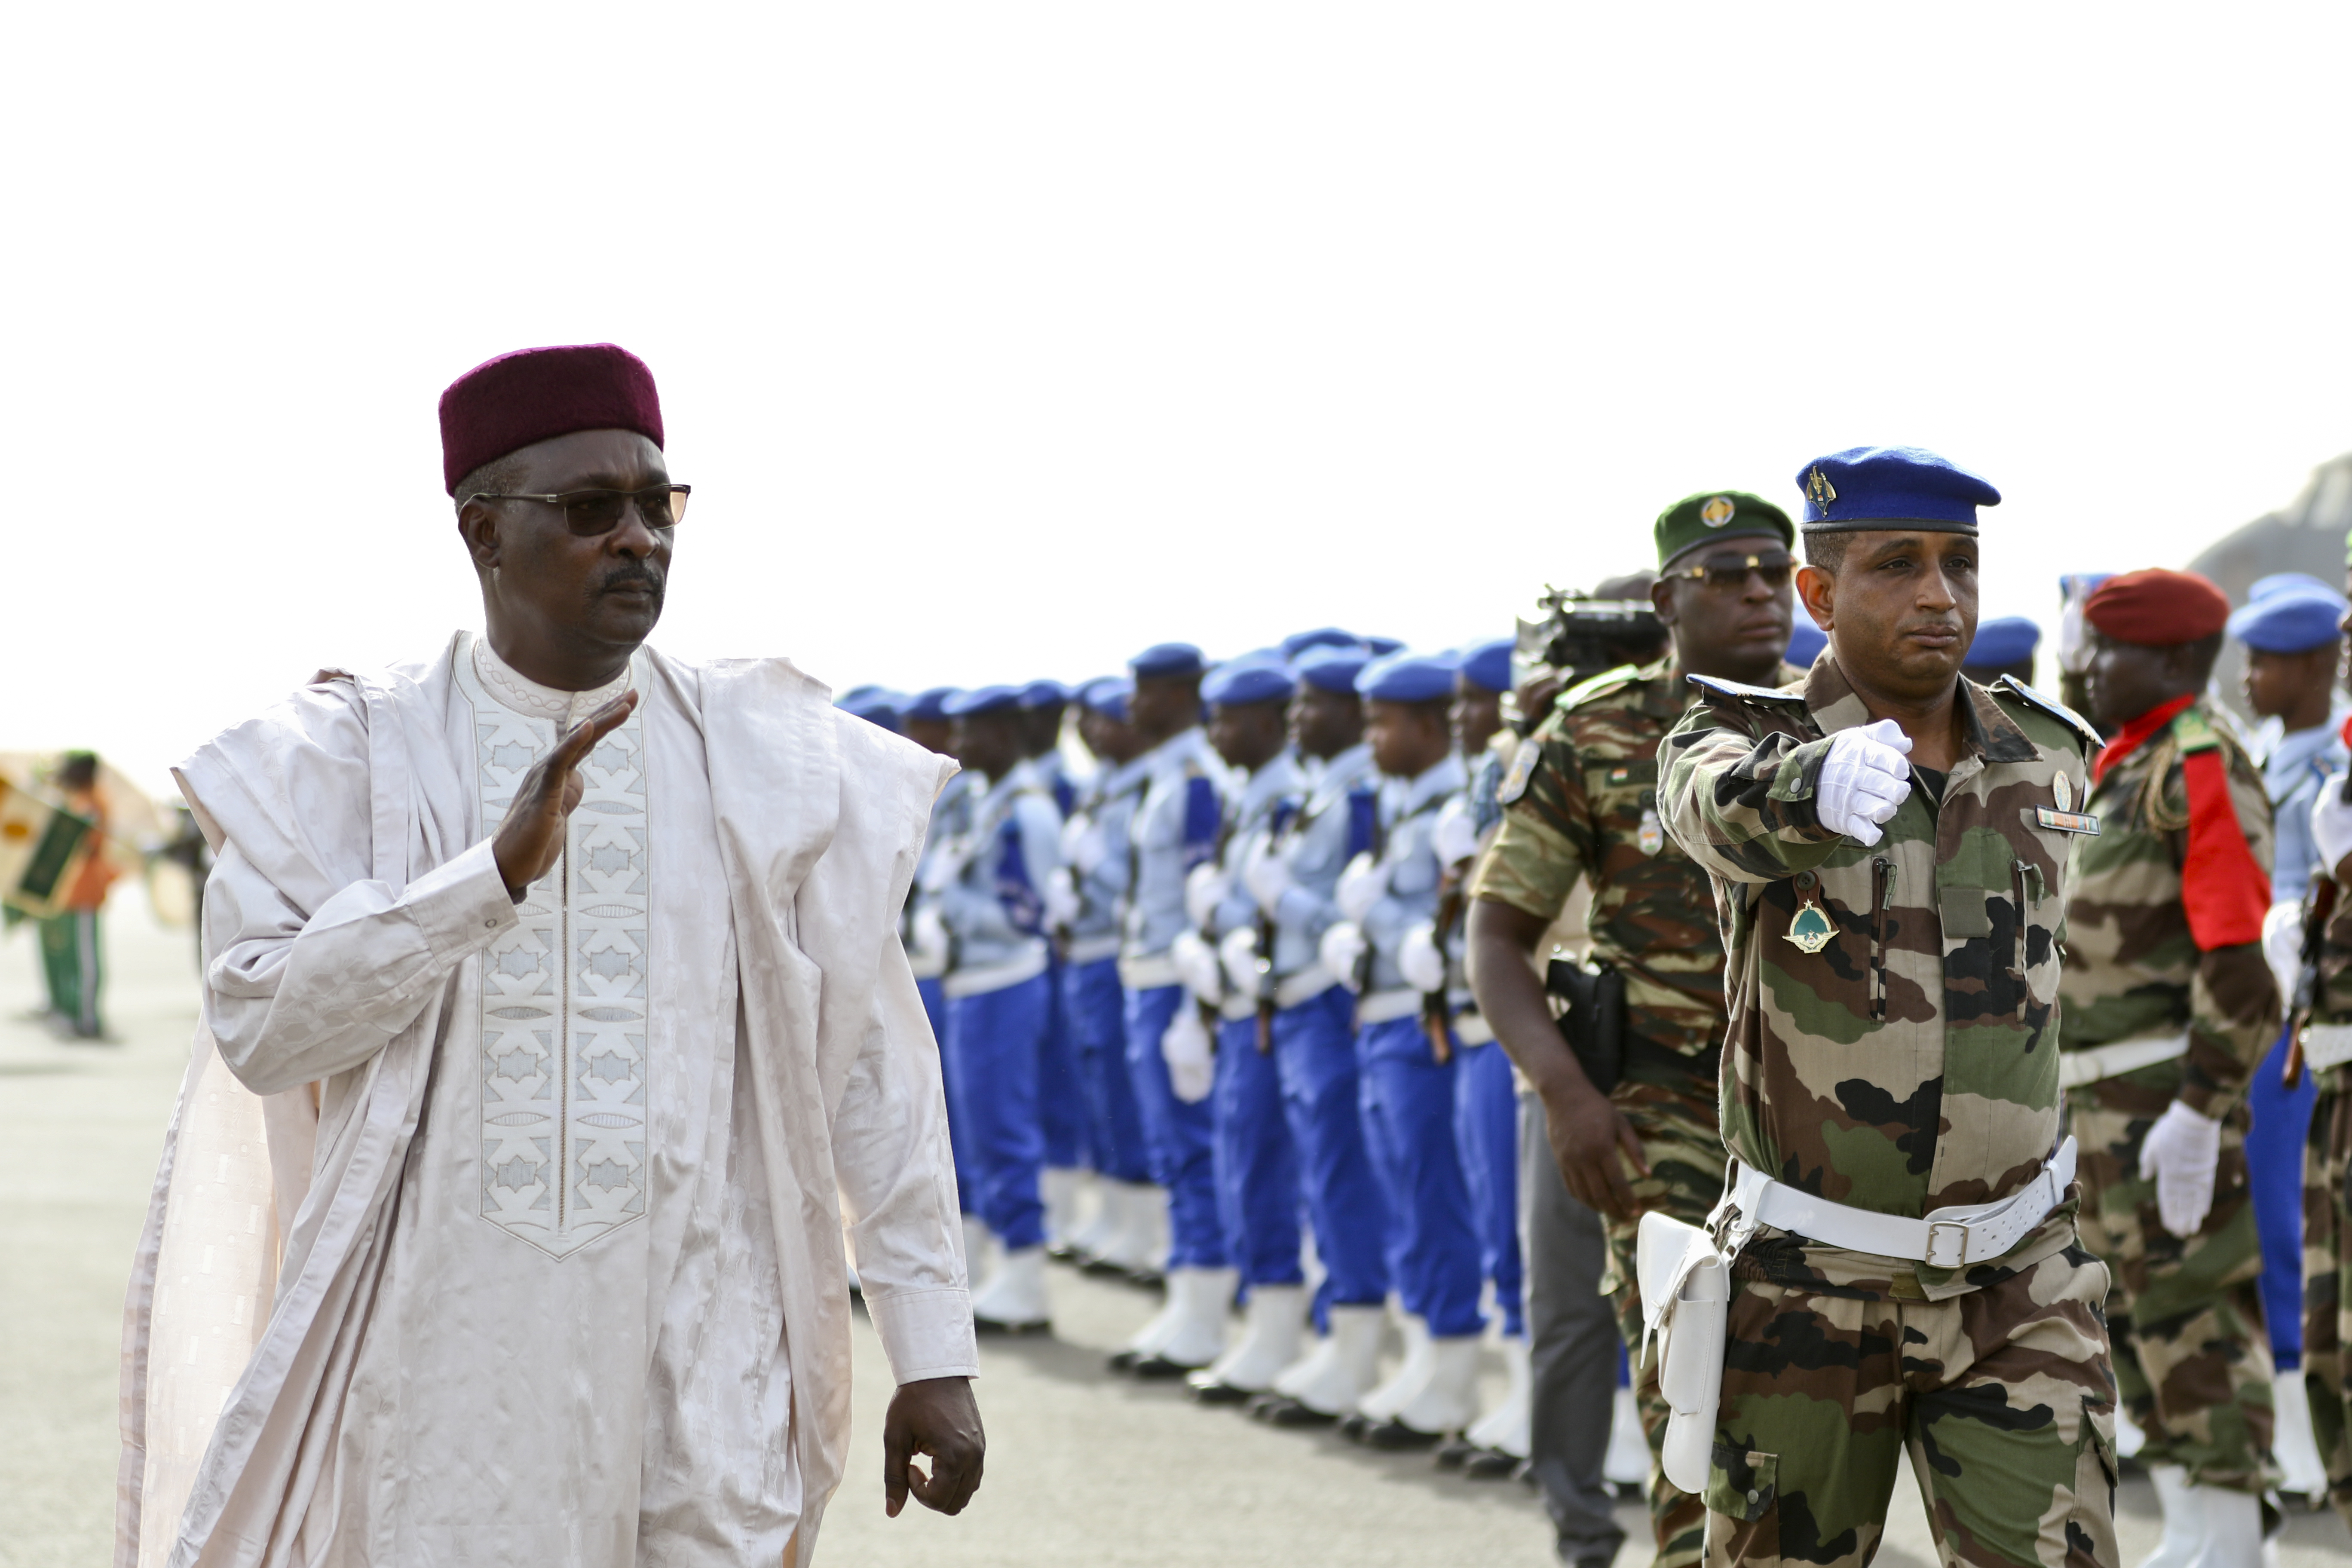 NIAMEY, Niger – Moutari Kalla, Nigerien Minister of Defense, inspects the troops to start off the opening ceremony of Flintlock 2018 in Niamey, Niger, April 11, 2018. Approximately 1,900 service members from more than 20 African and western partner nations are participating in Flintlock 2018 at multiple locations in Niger, Burkina Faso, and Senegal. (U.S. Army Photo by Sgt. Heather Doppke/79th Theater Sustainment Command)